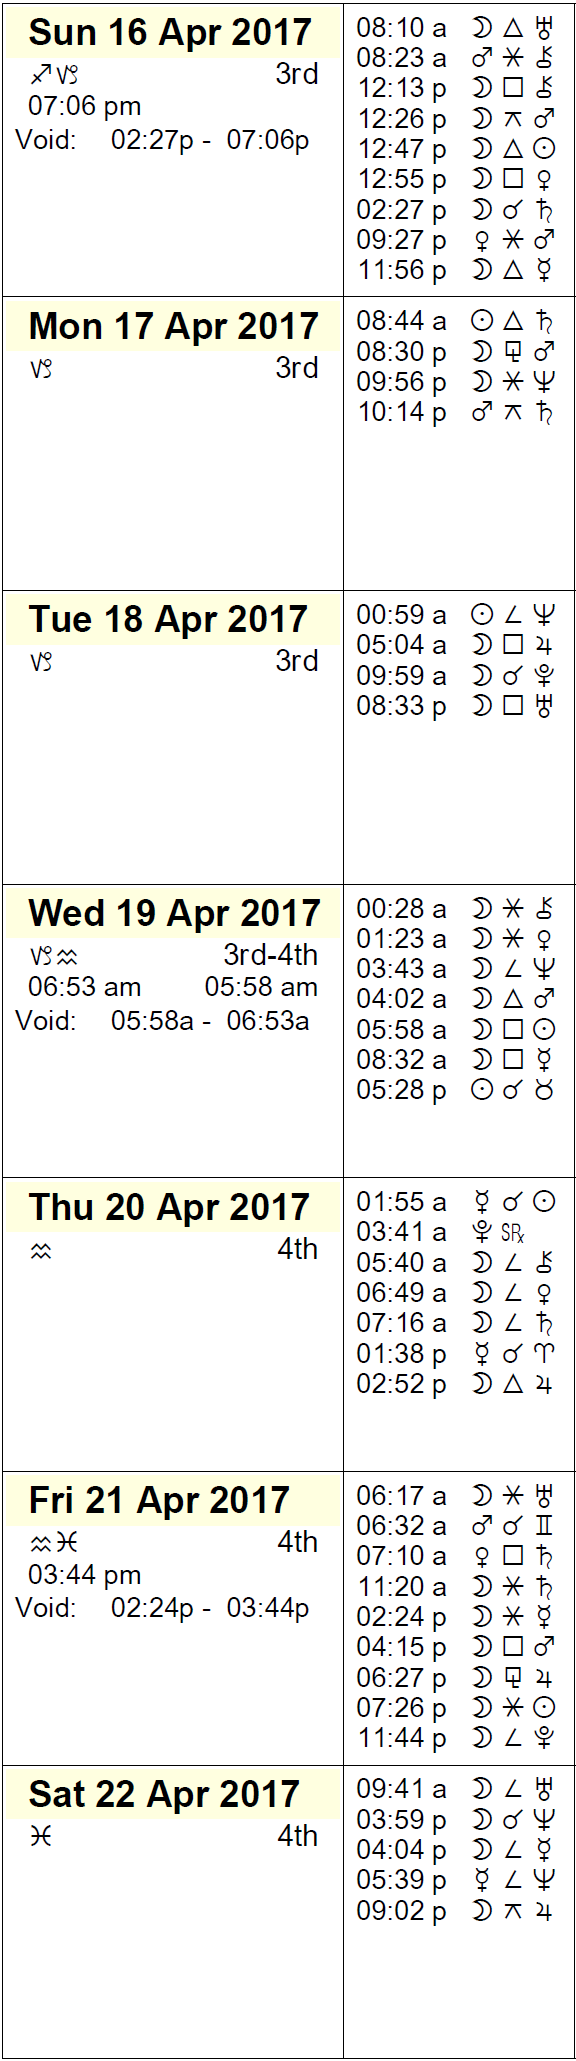 This Week in Astrology Calendar - April 16 to 22, 2017